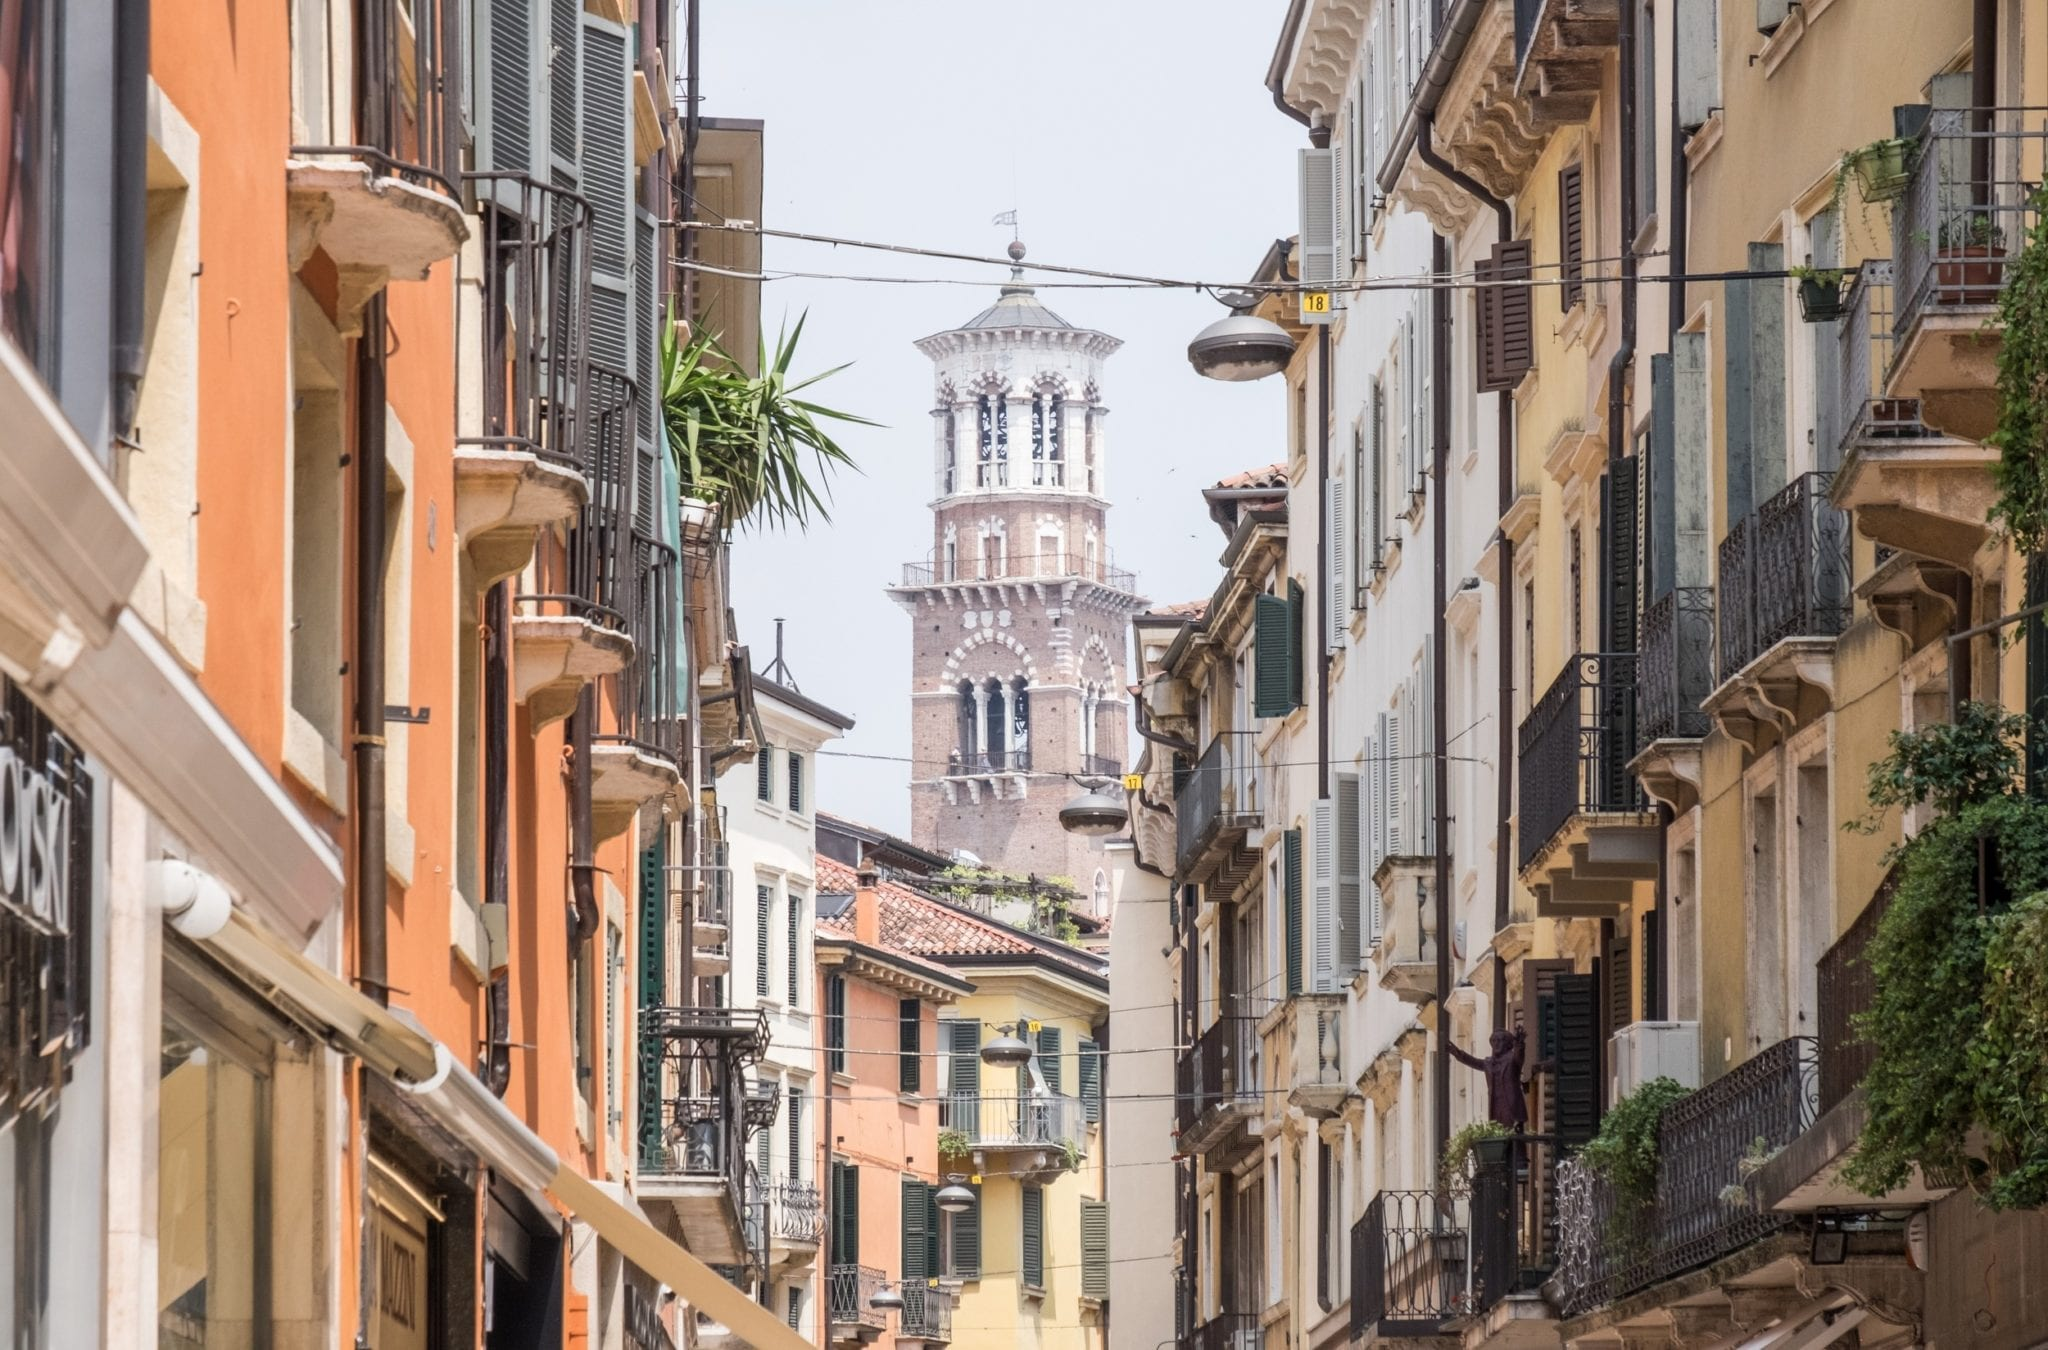 In Verona, you see the tower of a church rising in between residential buildings painted gold and yellow.